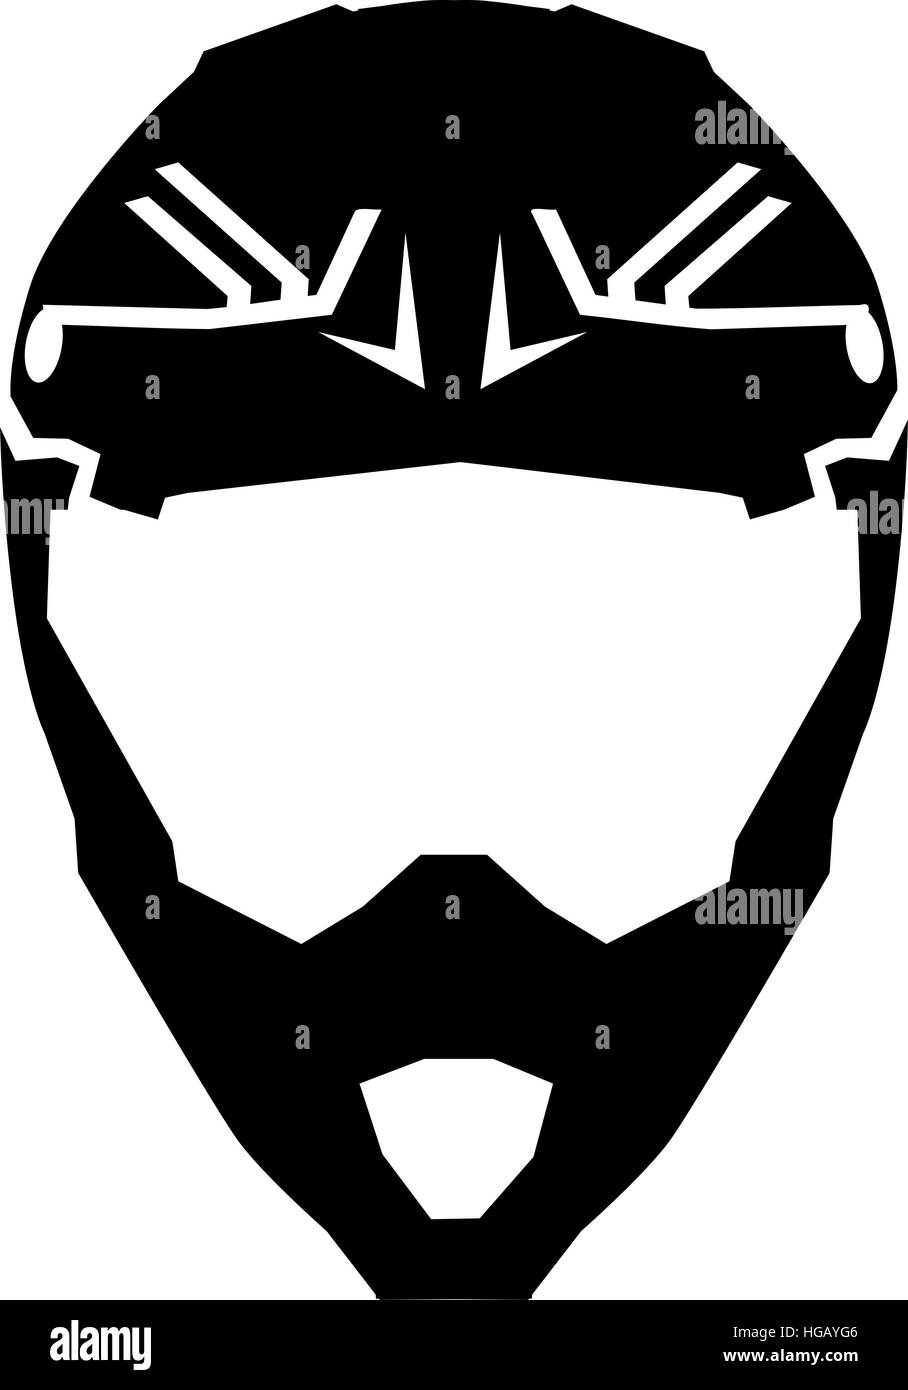 Motocross Vector Vectors High Resolution Stock Photography And Images Alamy